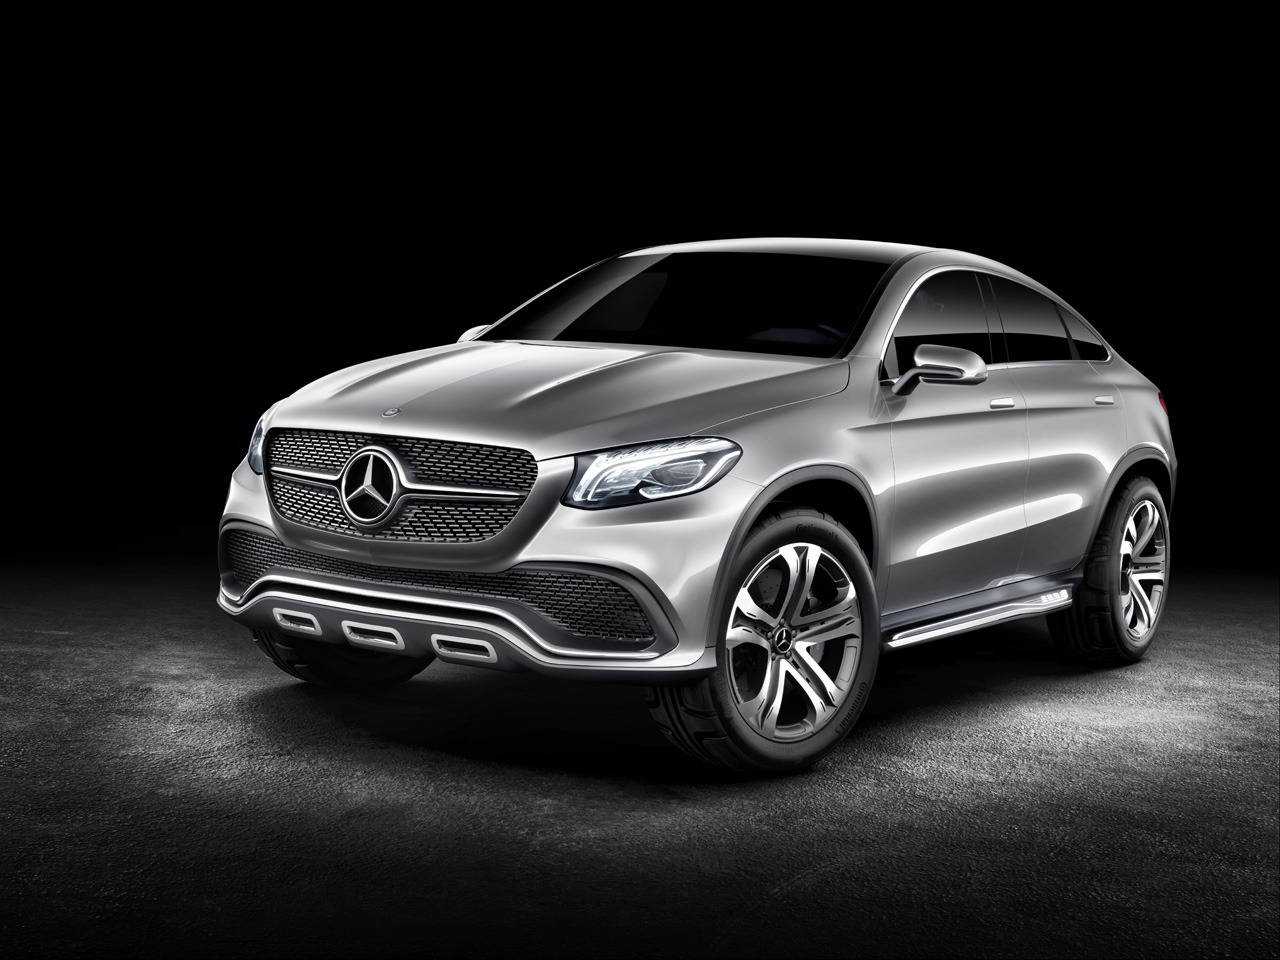 mercedes concept coupe suv 5 Mercedes Concept Coupe SUV Revealed in Beijing Motor Show